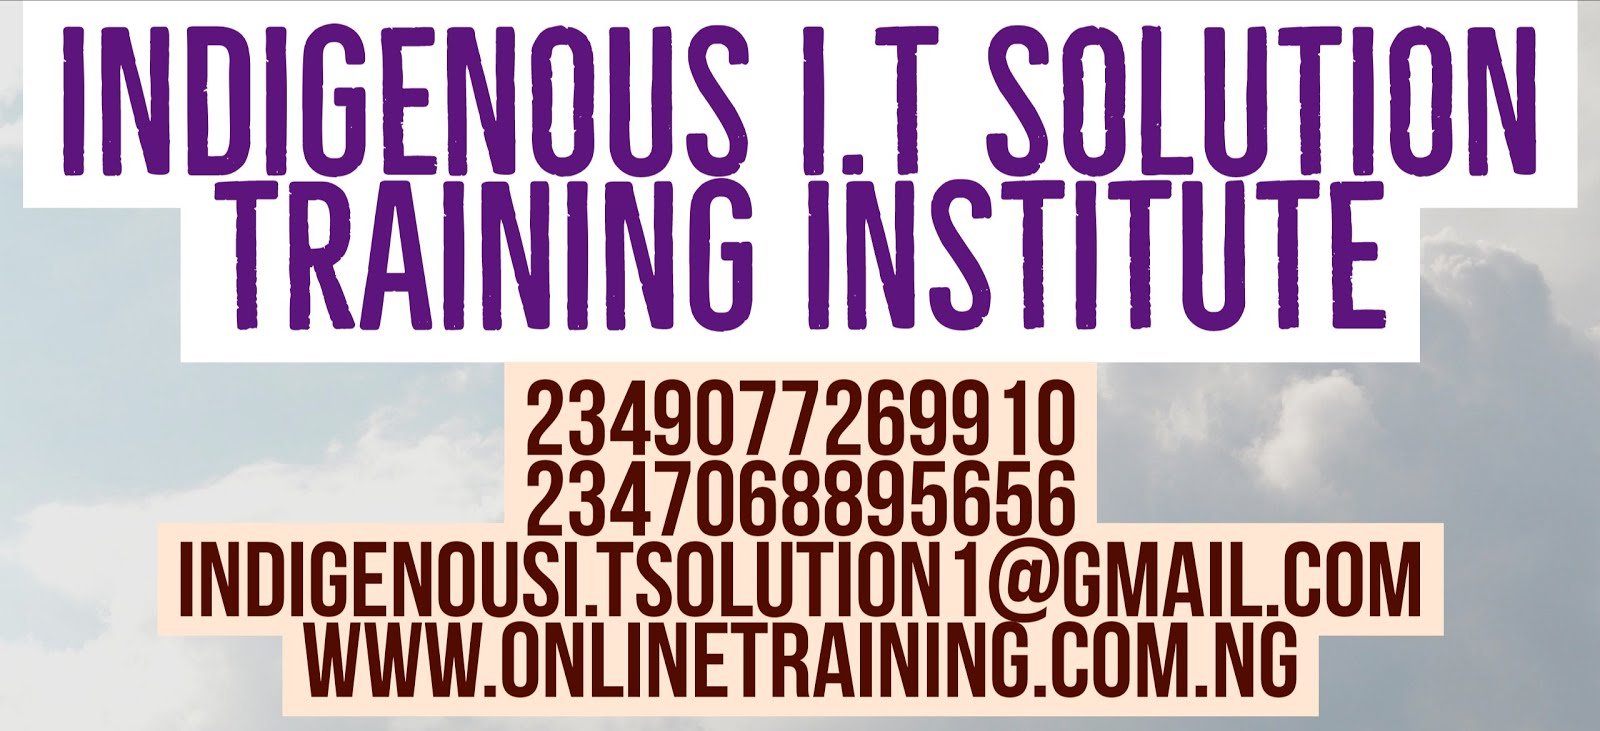 INDIGENOUS I.T SOLUTION TRAINING INSTITUTE